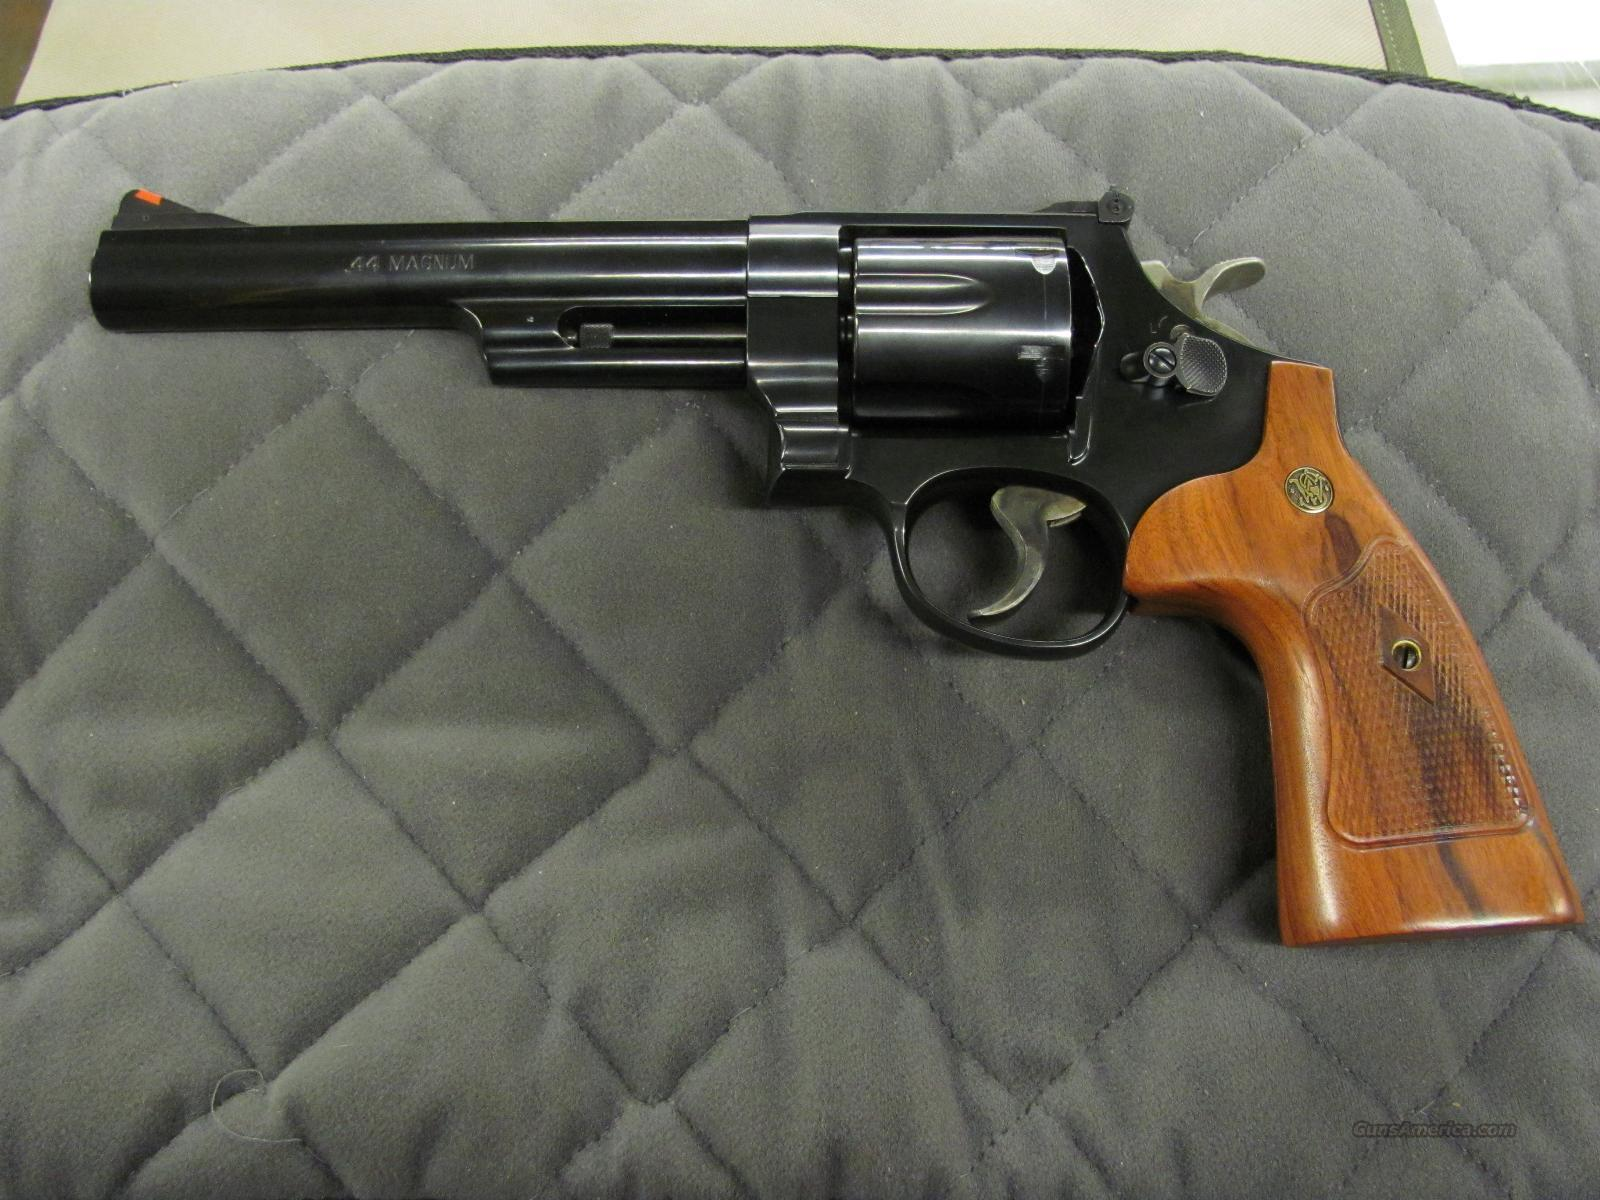 Smith & Wesson Model 29 44 Magnum  **NEW**  Guns > Pistols > Smith & Wesson Revolvers > Full Frame Revolver